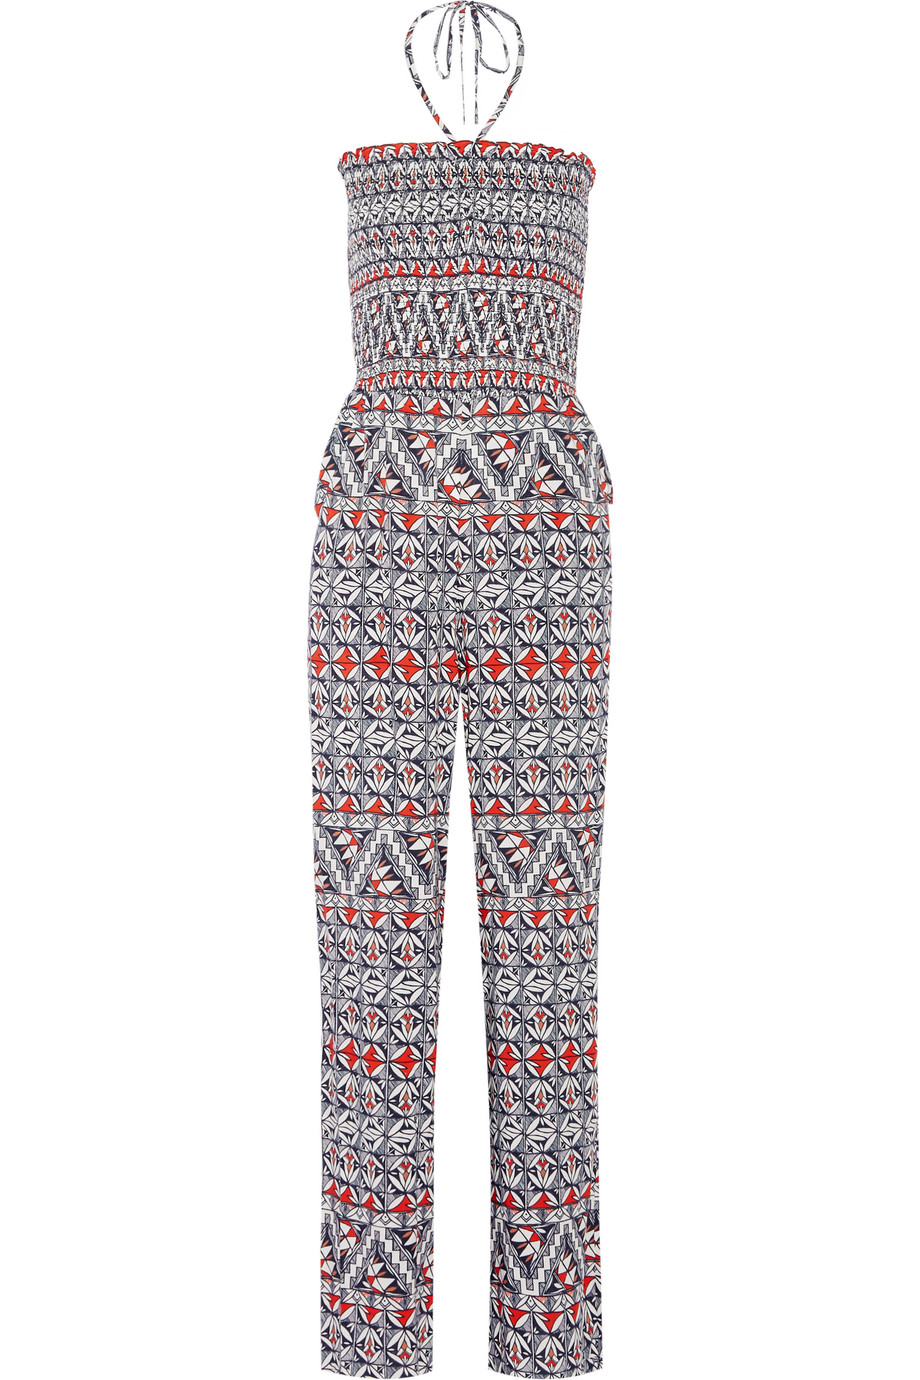 Tory Burch Printed Voile Jumpsuit, Navy, Women's, Size: S